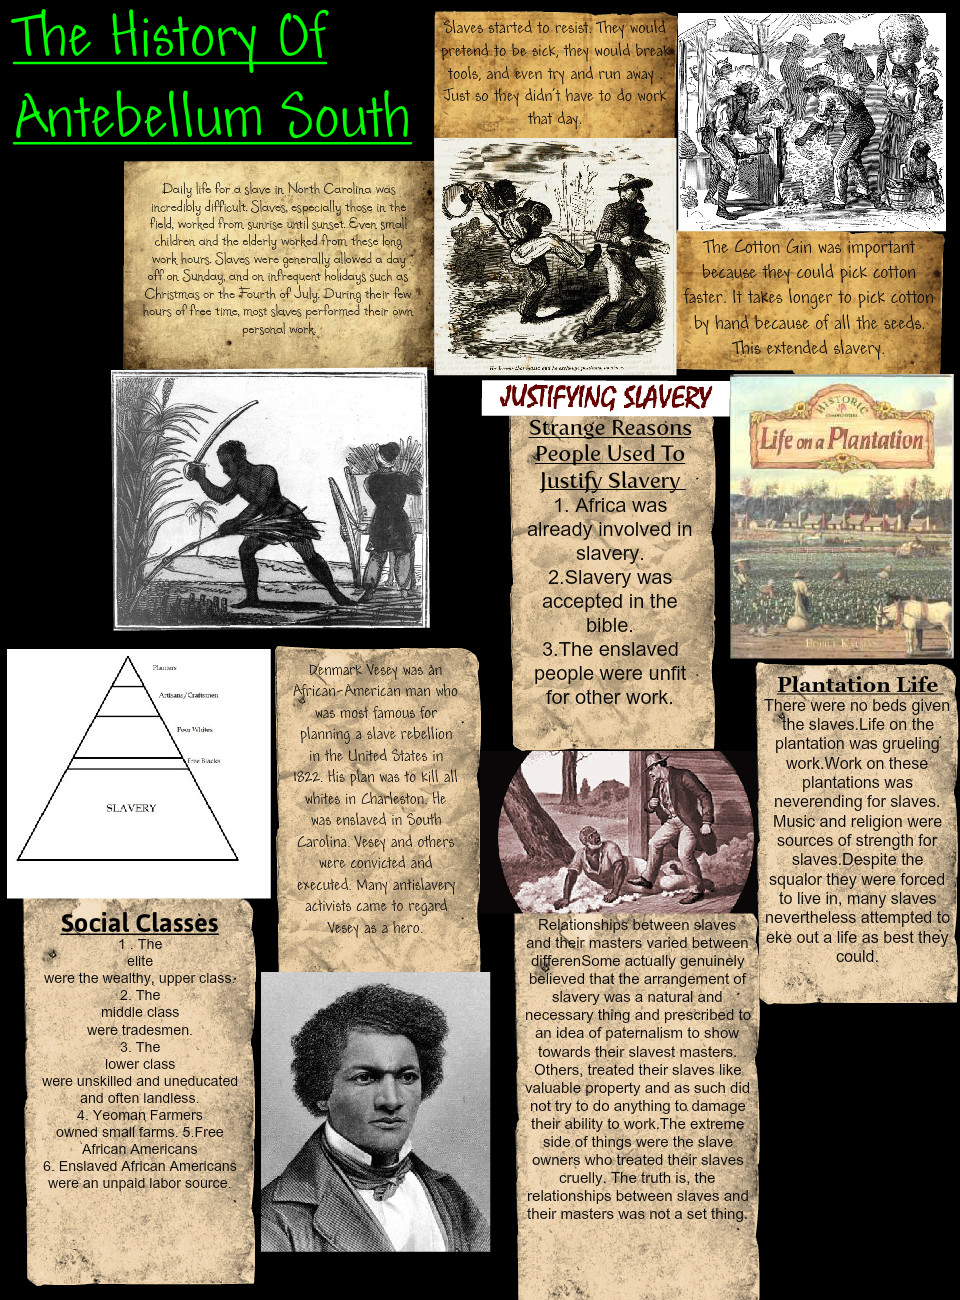 The History of Antebellum South